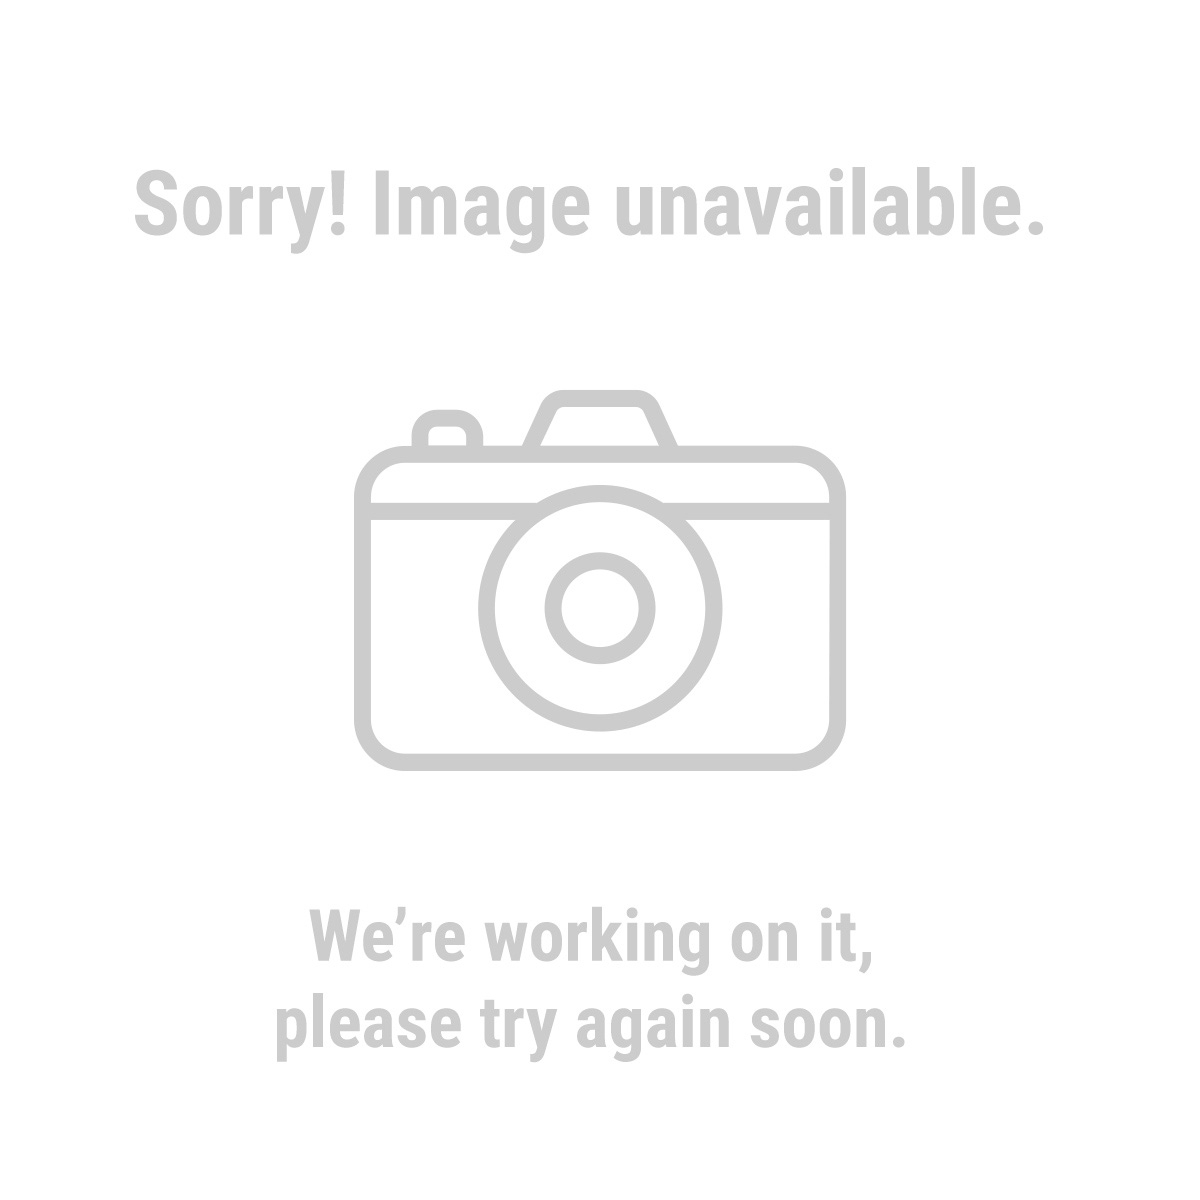 Cen-Tech 67724 30 Amp Automotive Fuse Circuit Tester